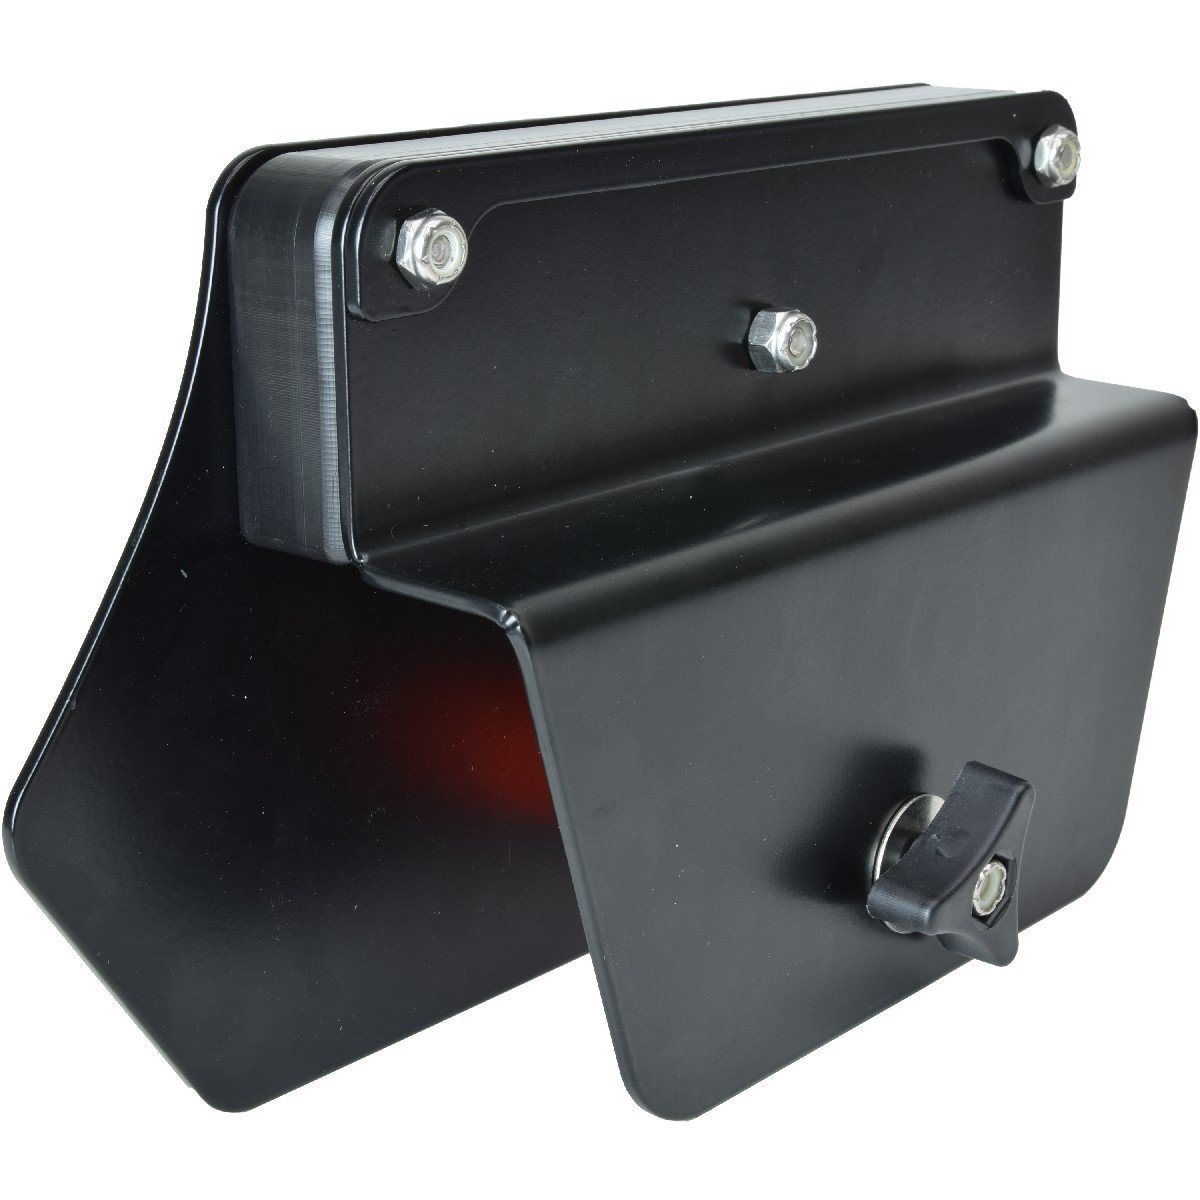 Frontier Outboard Mount